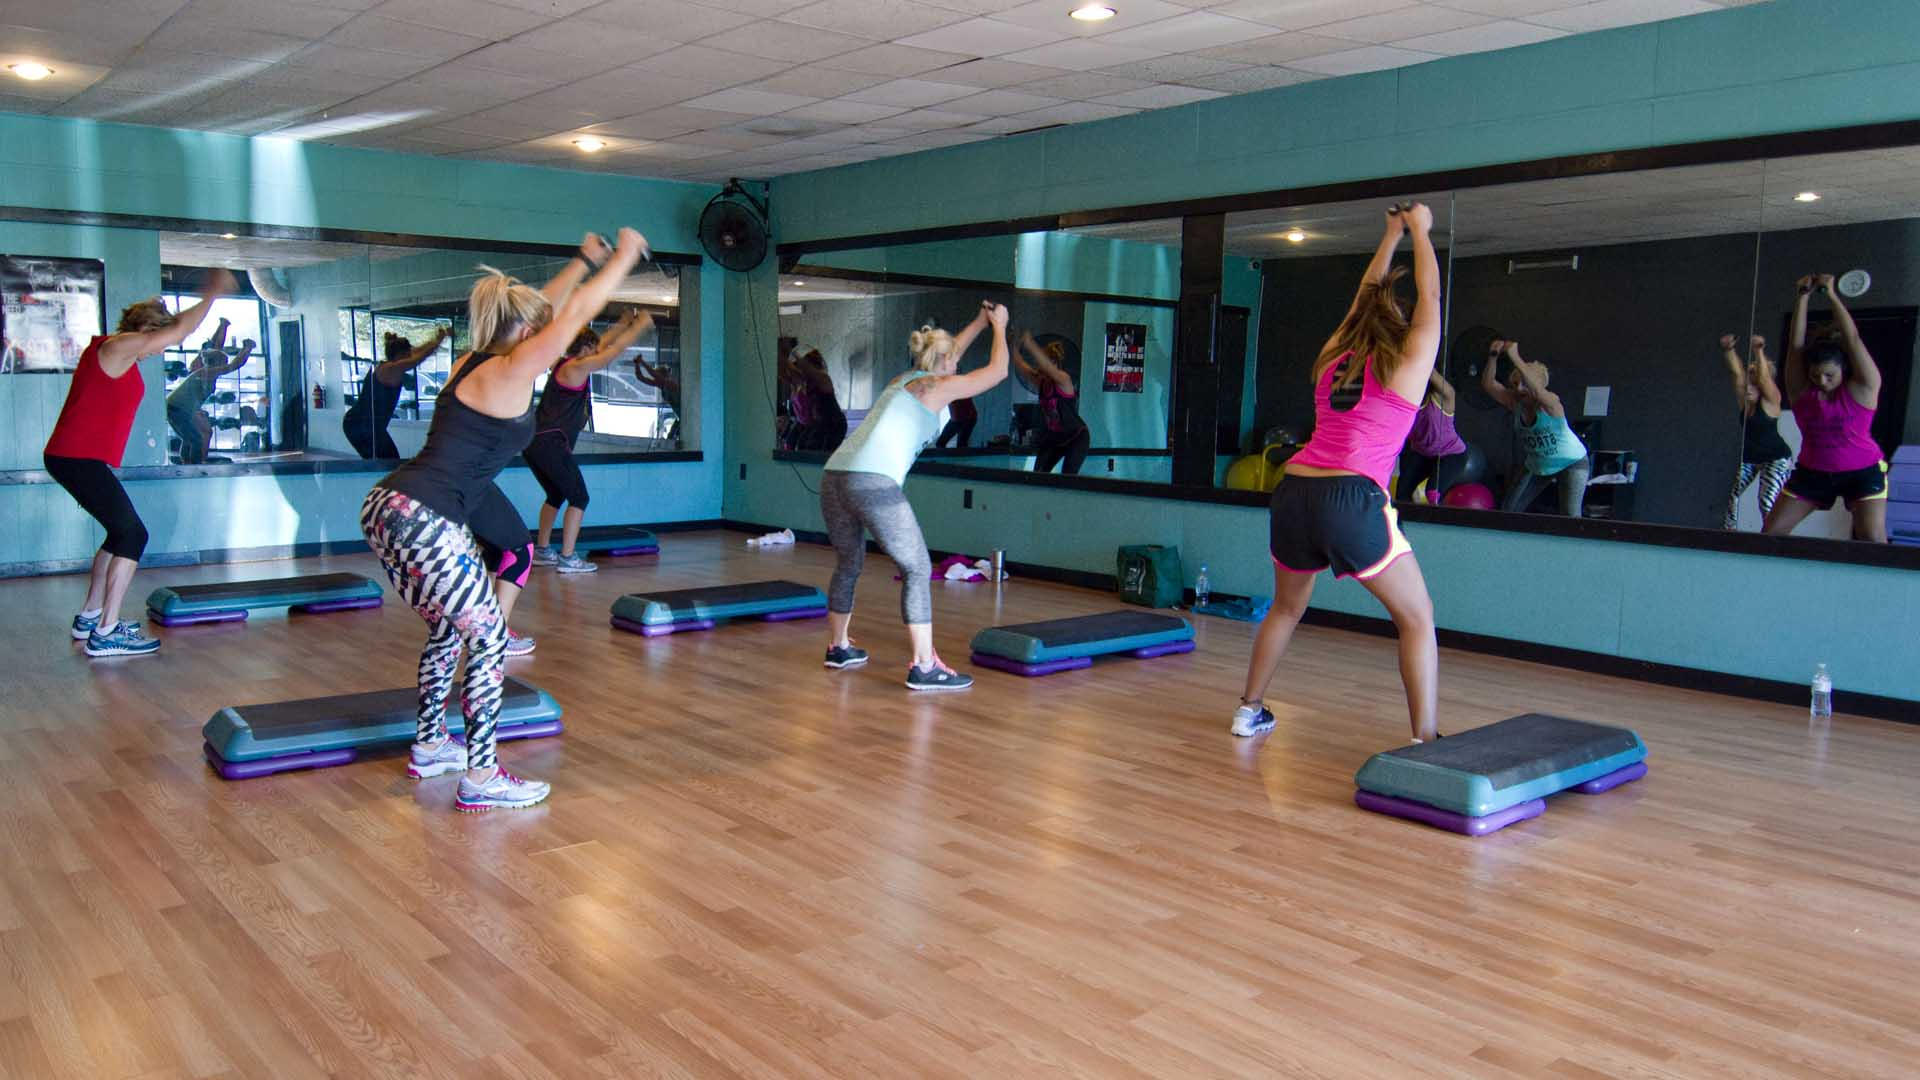 A group of women participating in Kathy's group fitness class standing next to their aerobics steps with feet shoulder width and hands in the air.